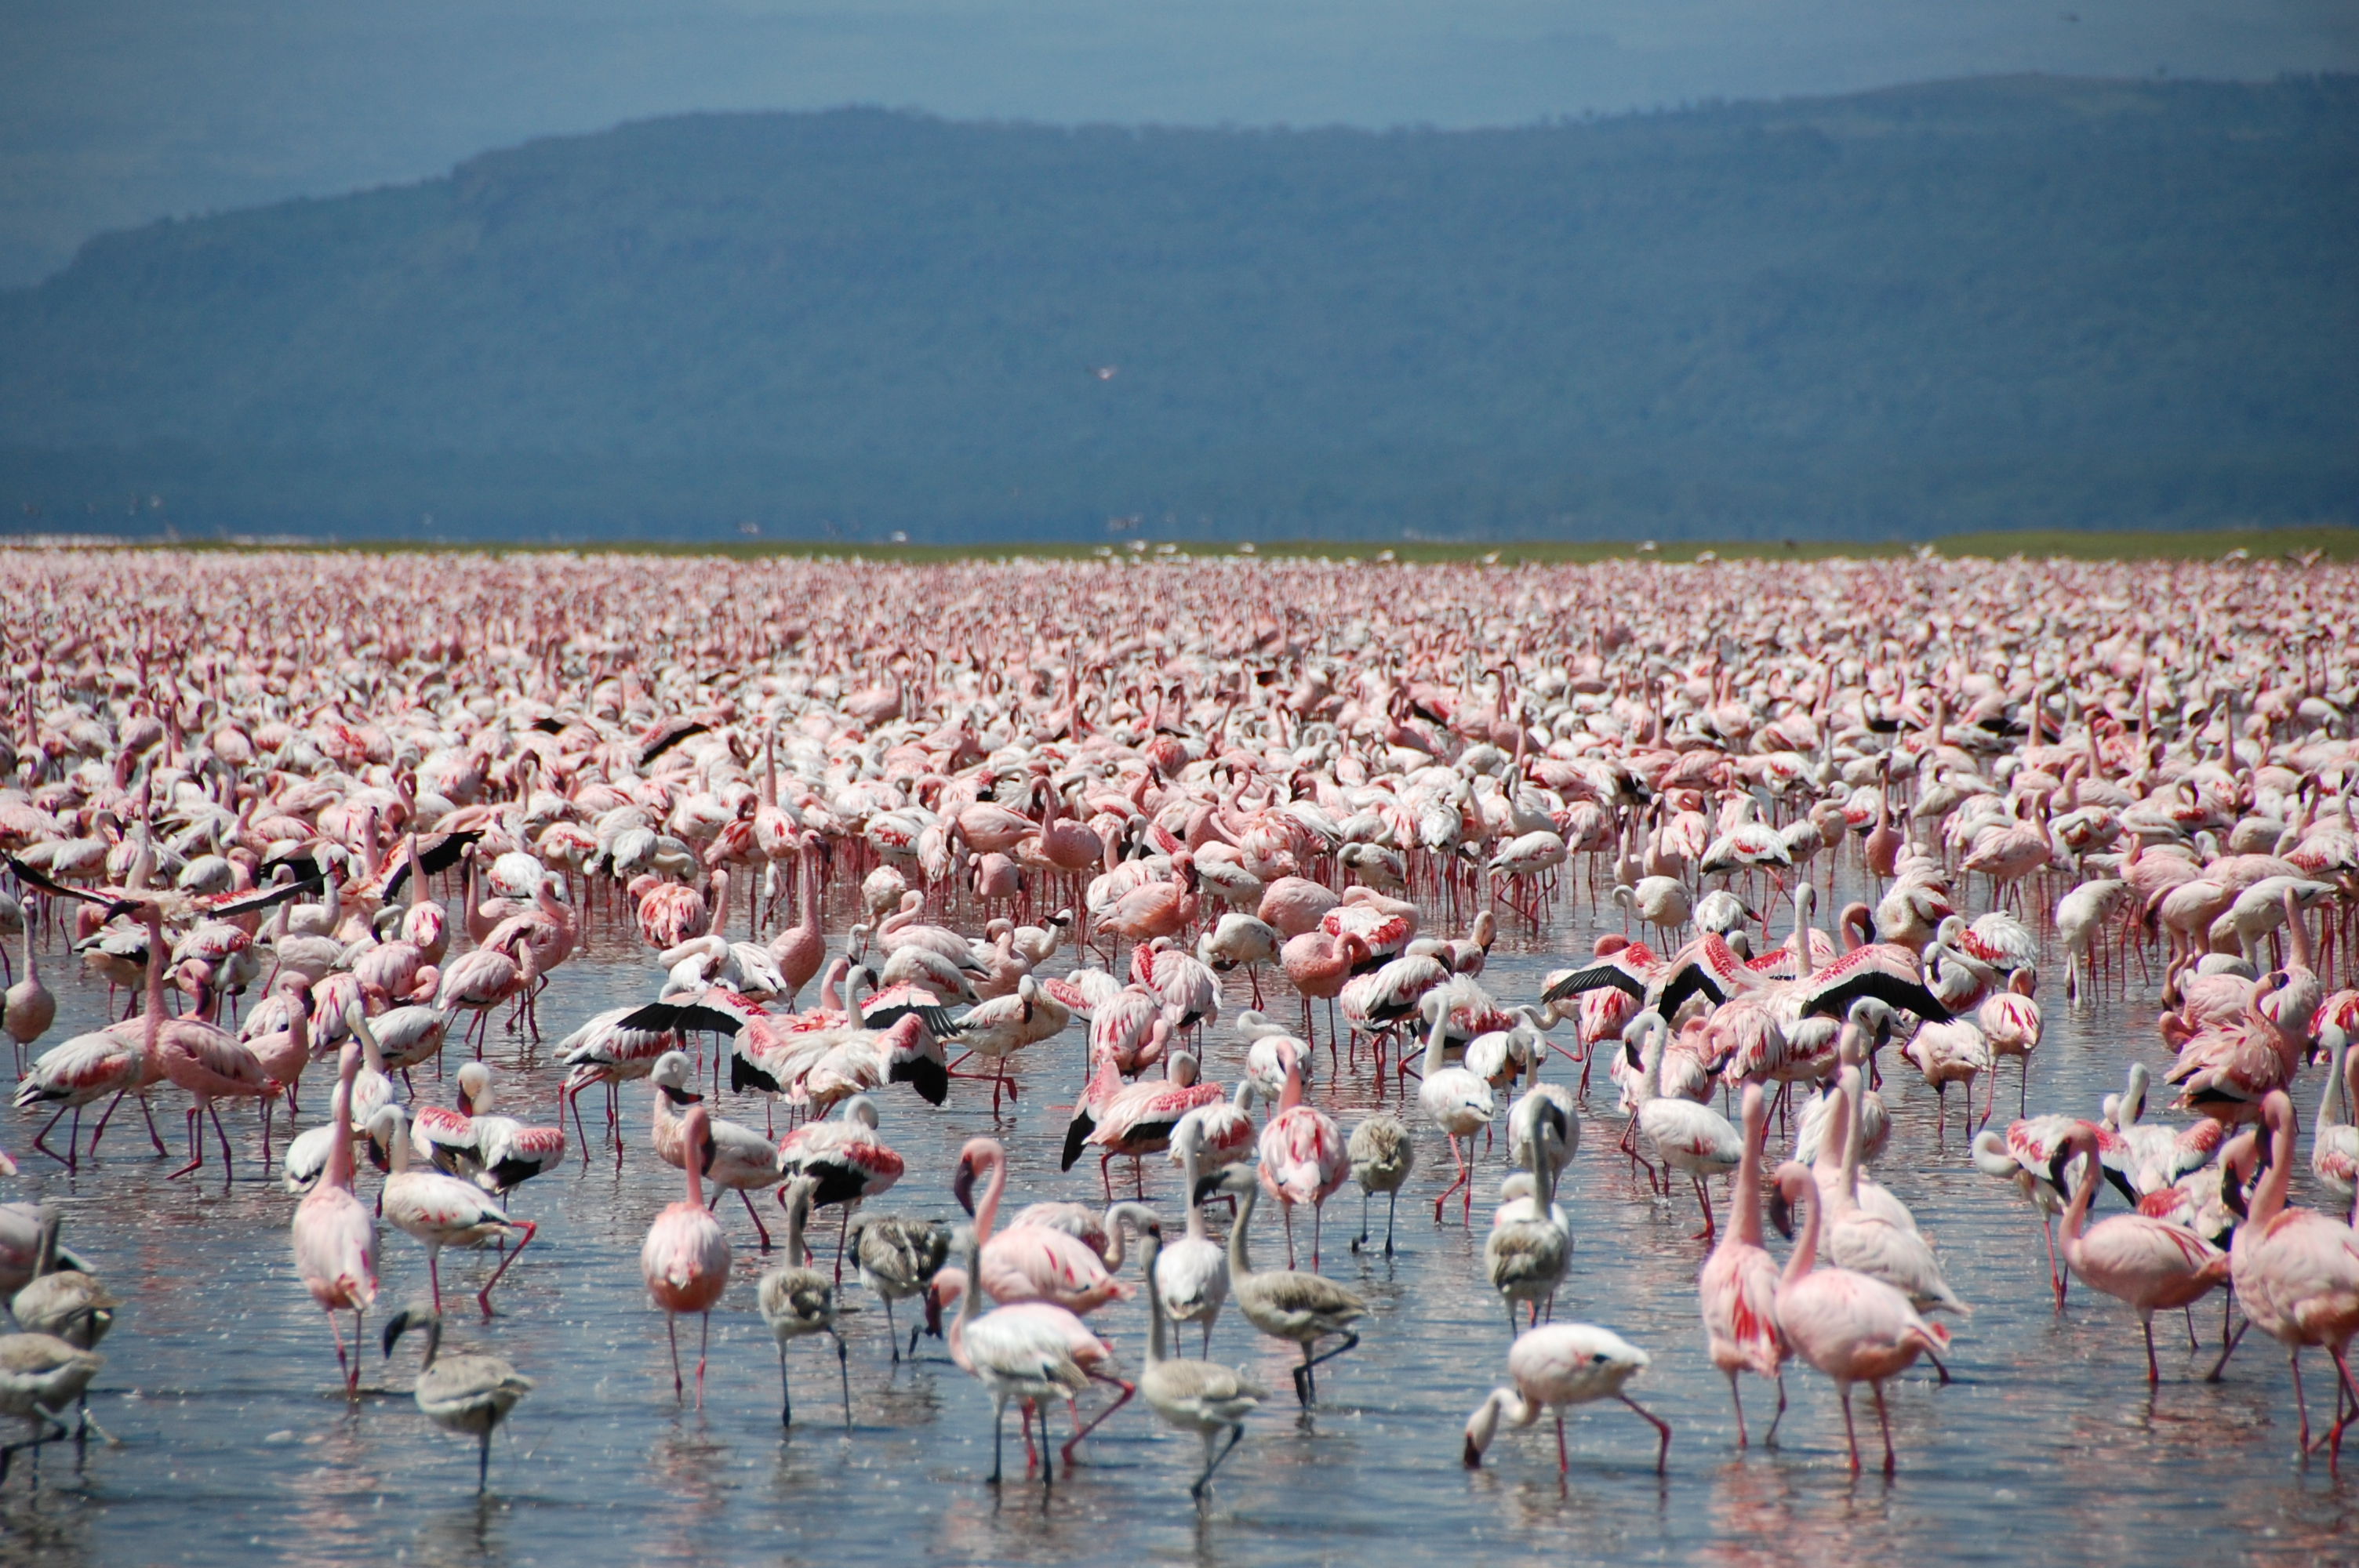 Large_number_of_flamingos_at_Lake_Nakuru.jpg